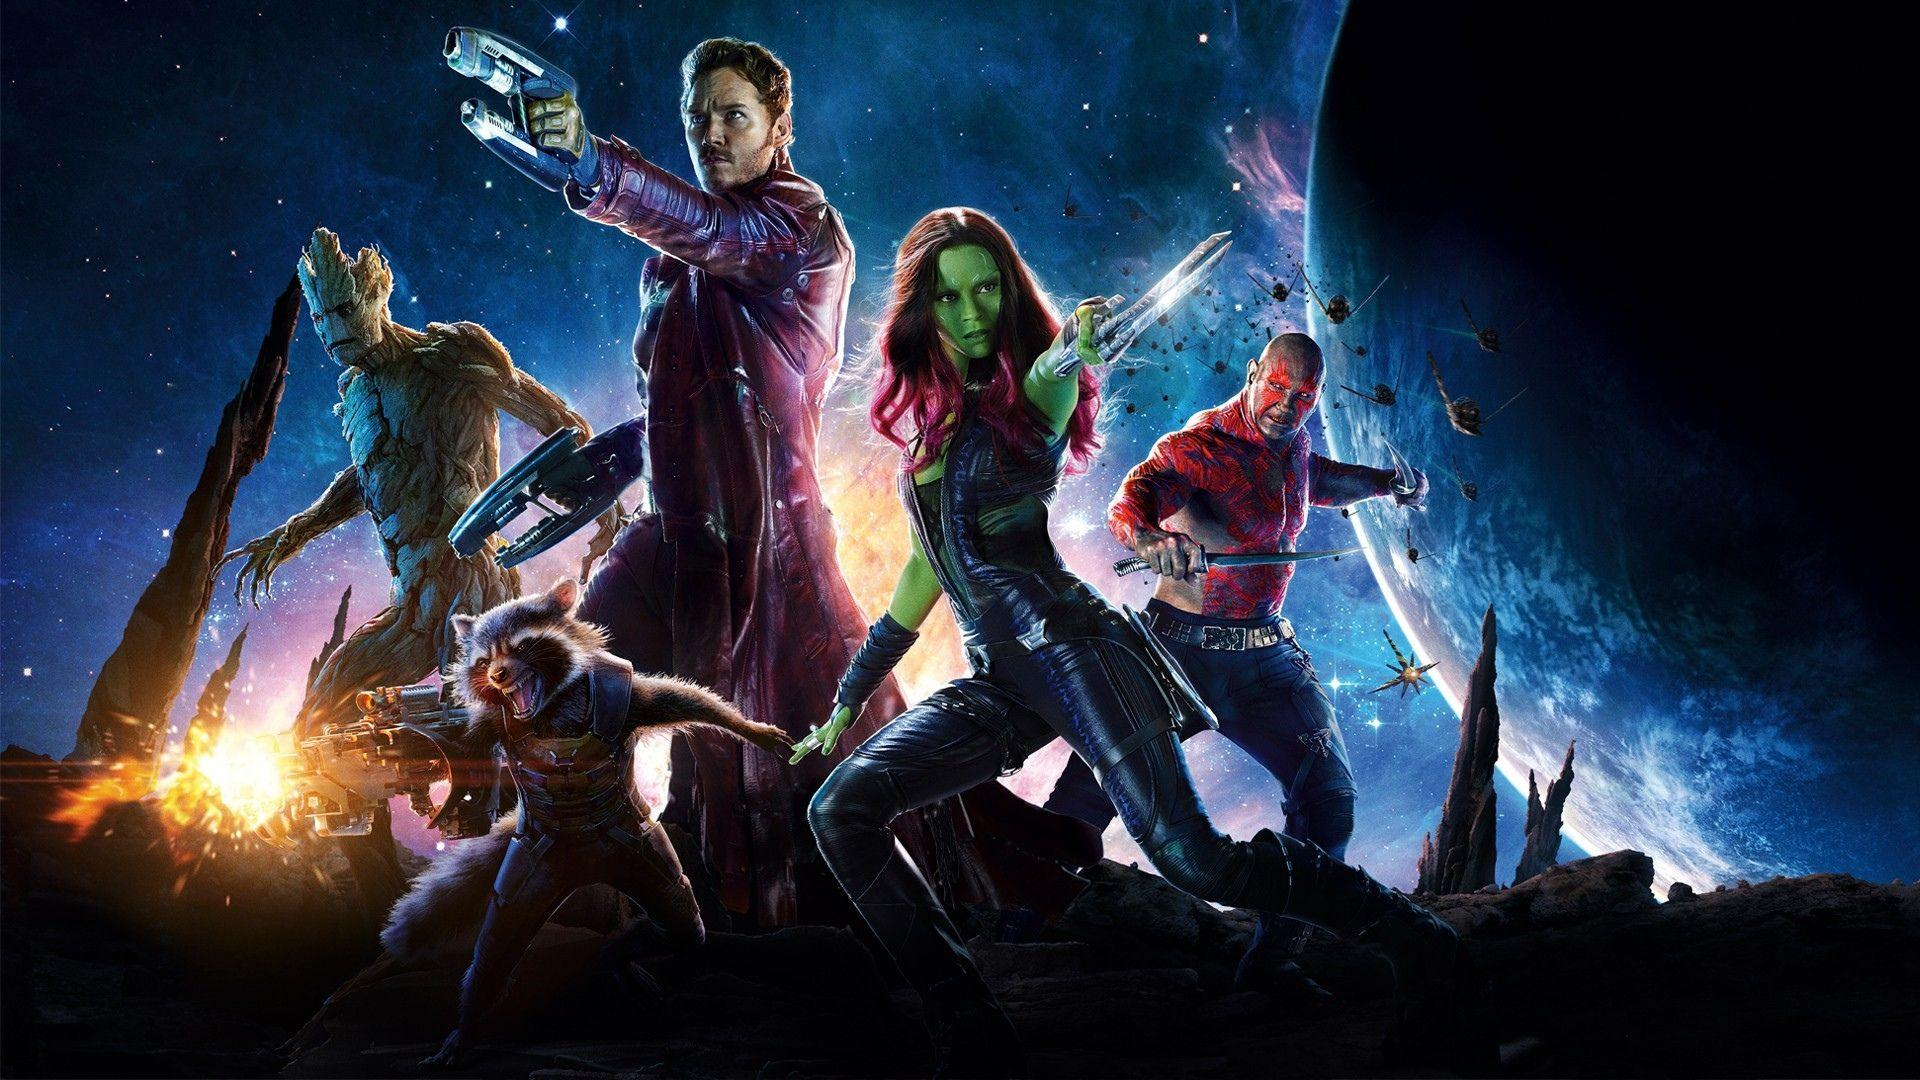 Guardians of the Galaxy Full Movie Online